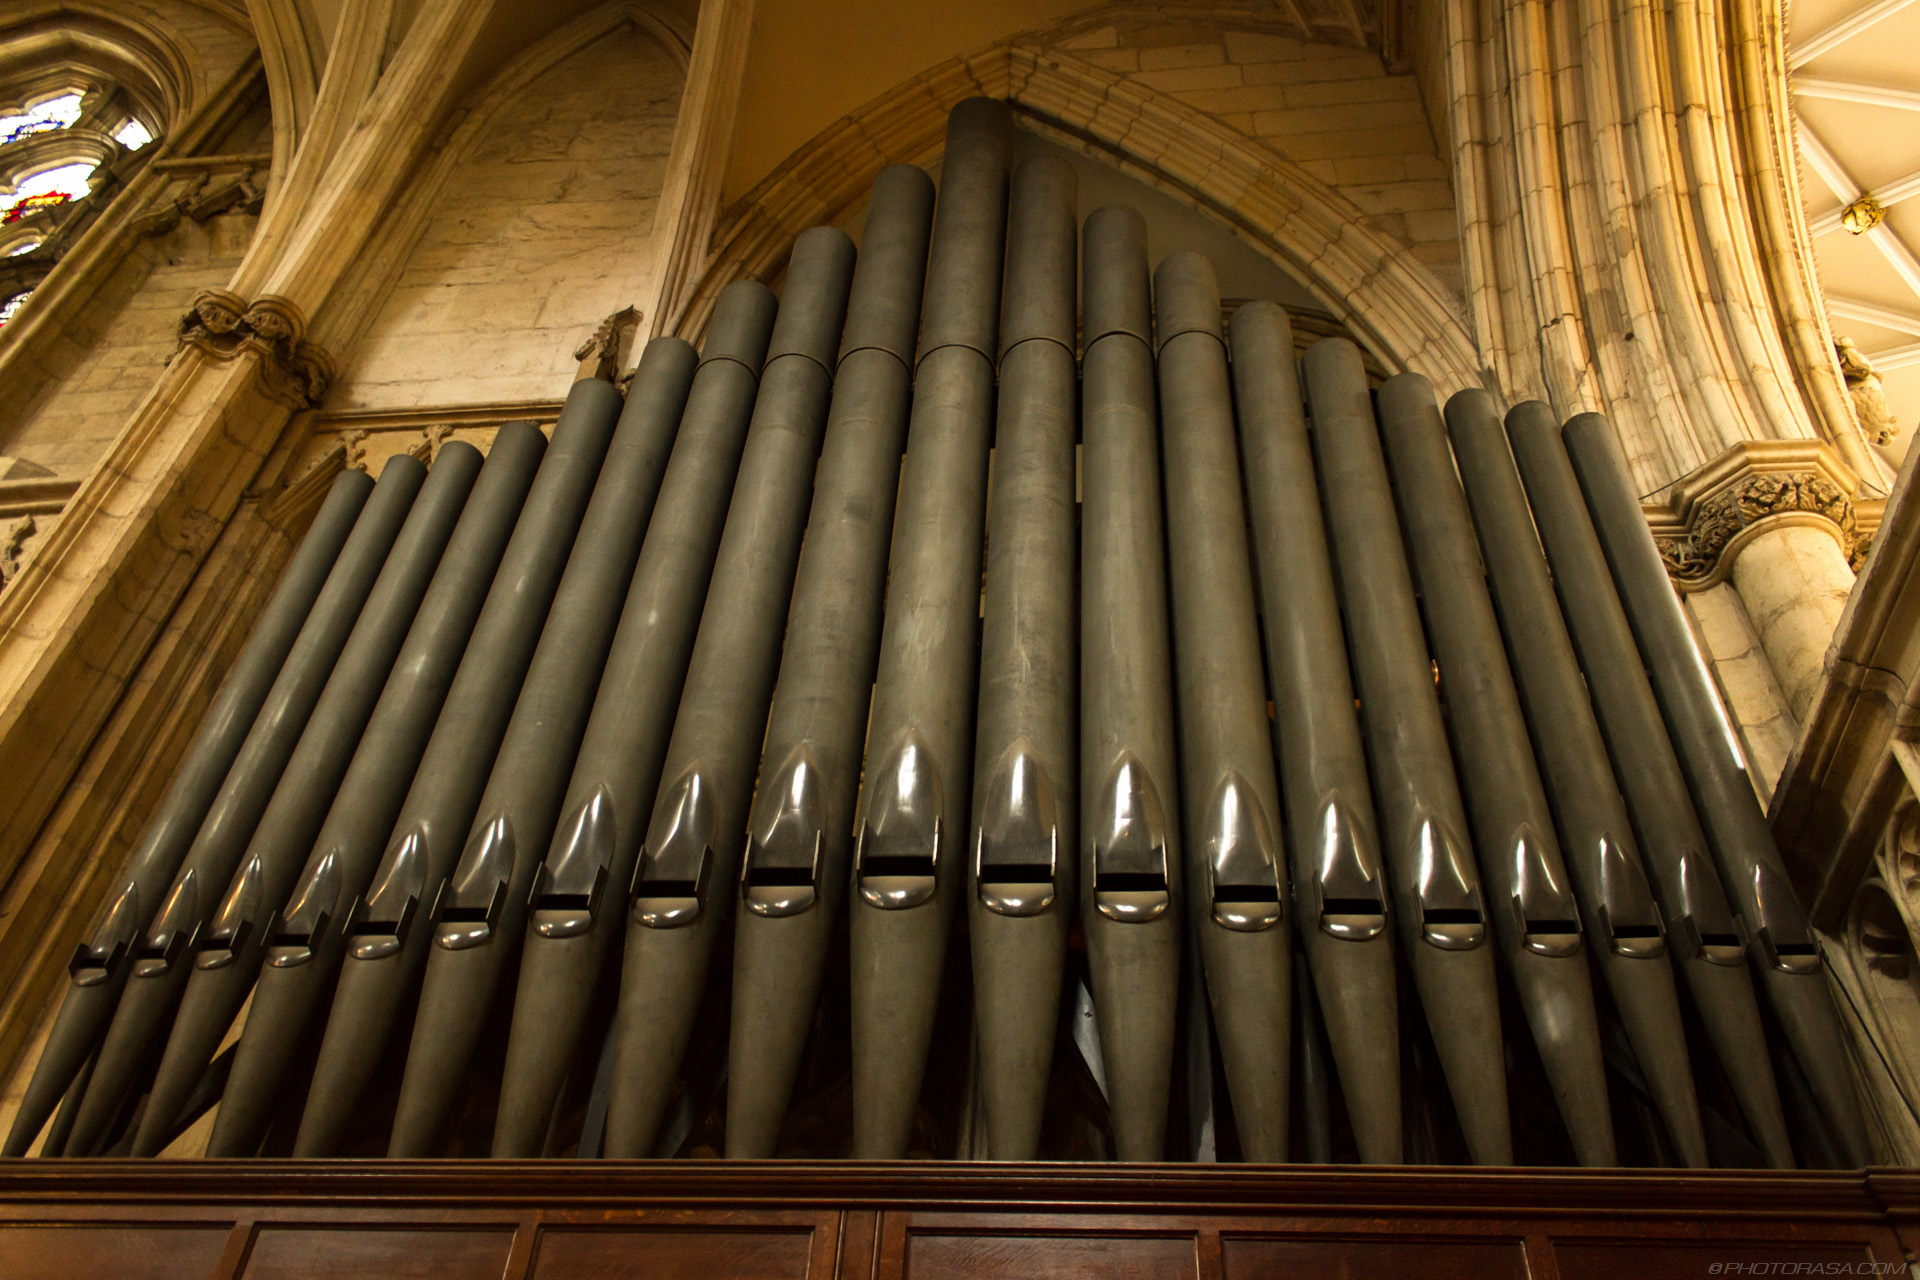 https://photorasa.com/yorkminster-cathedral/grey-pipes-from-the-old-organ/